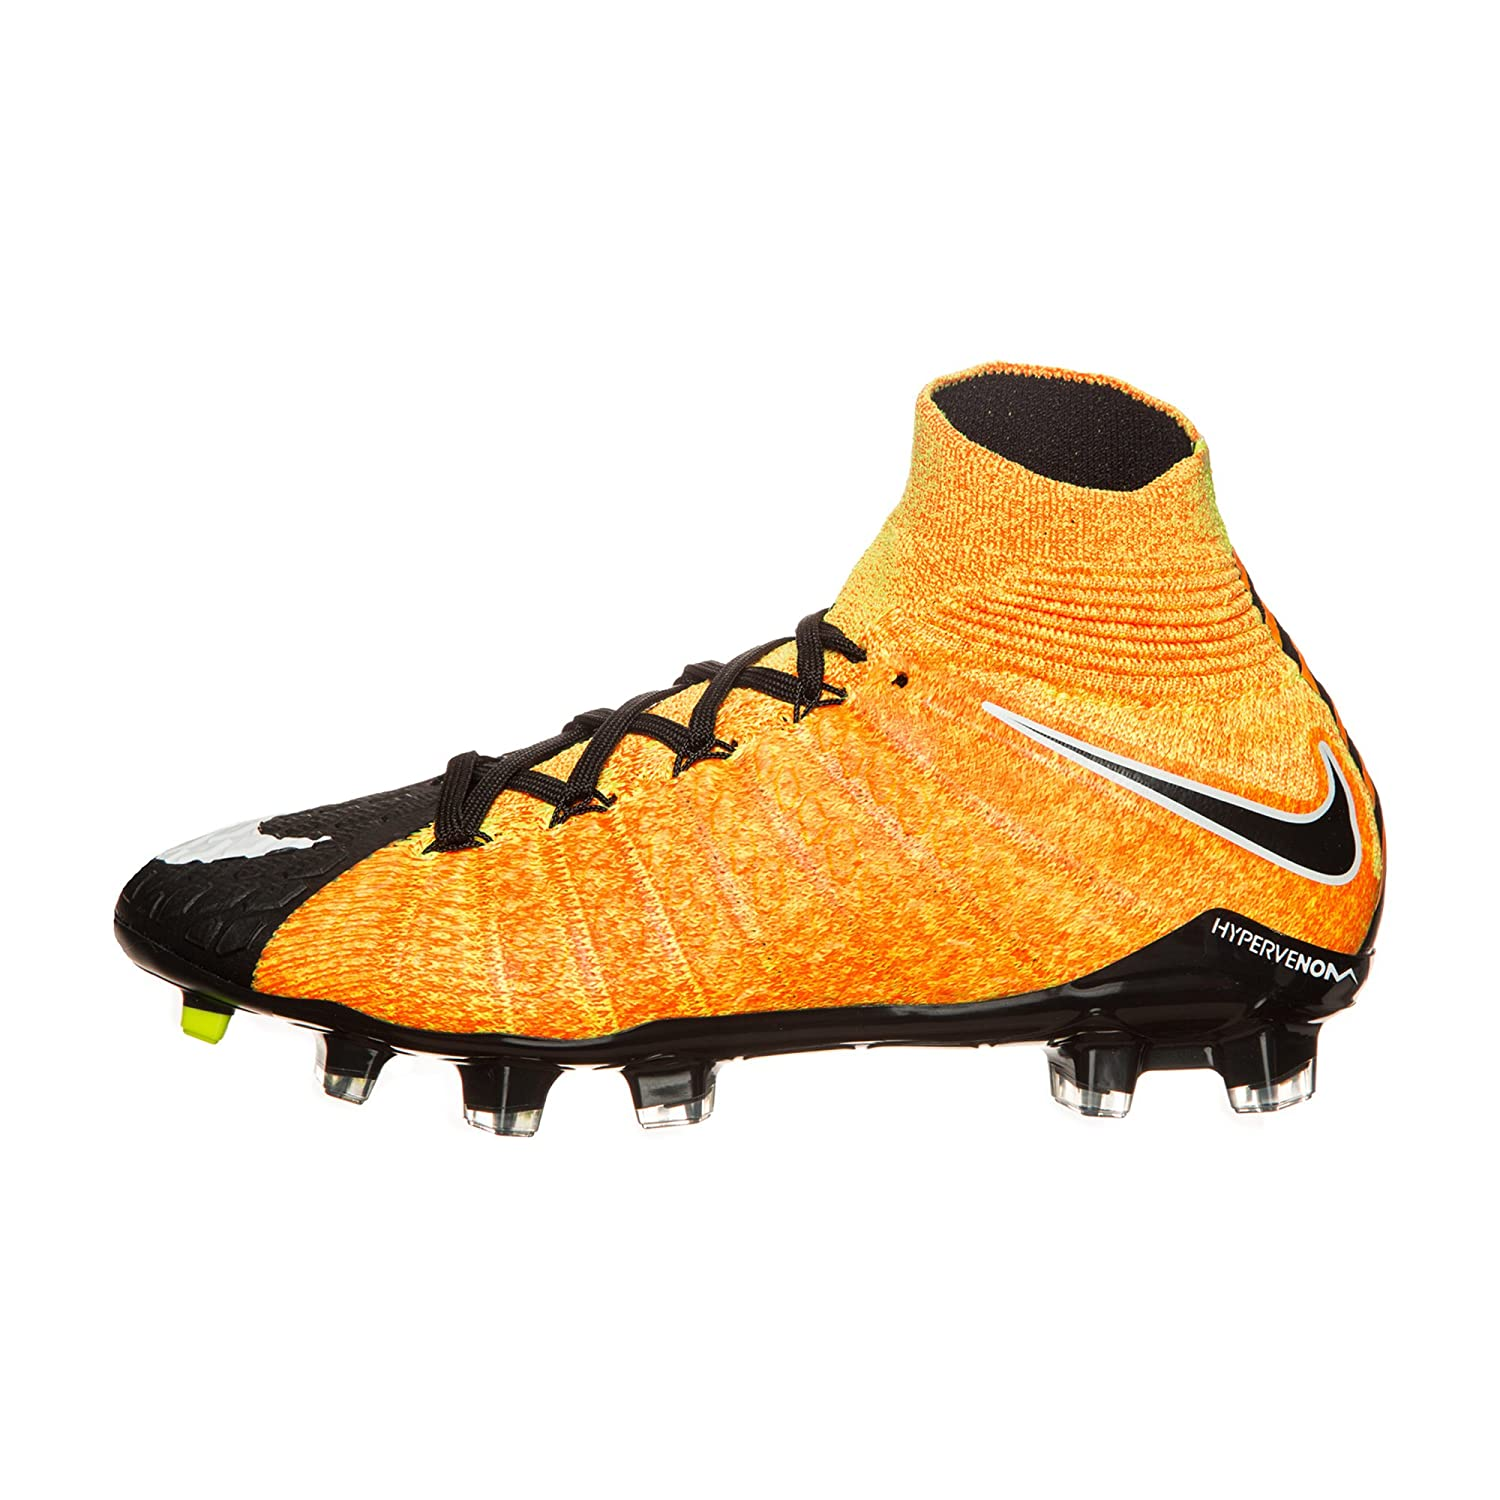 online store 226f0 65ac0 Nike Kids' Jr. Hypervenom Phantom 3 DF FG Soccer Shoe (Sz. 5.5Y) Laser  Orange, Black